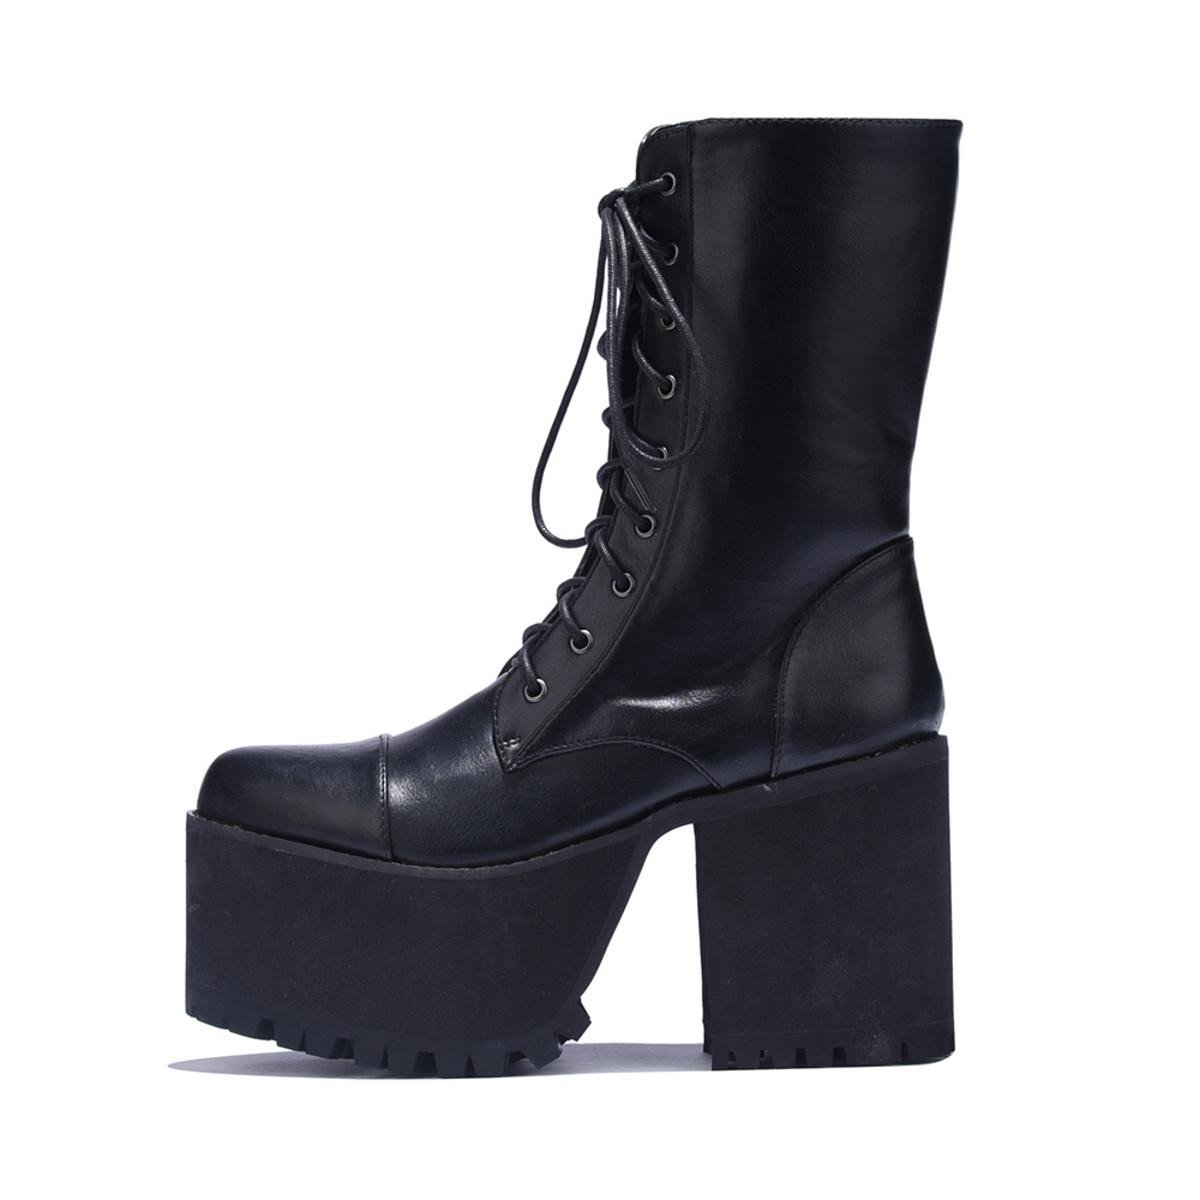 Y.R.U. for Women: Wolfenstein Black Platform Heel Boots